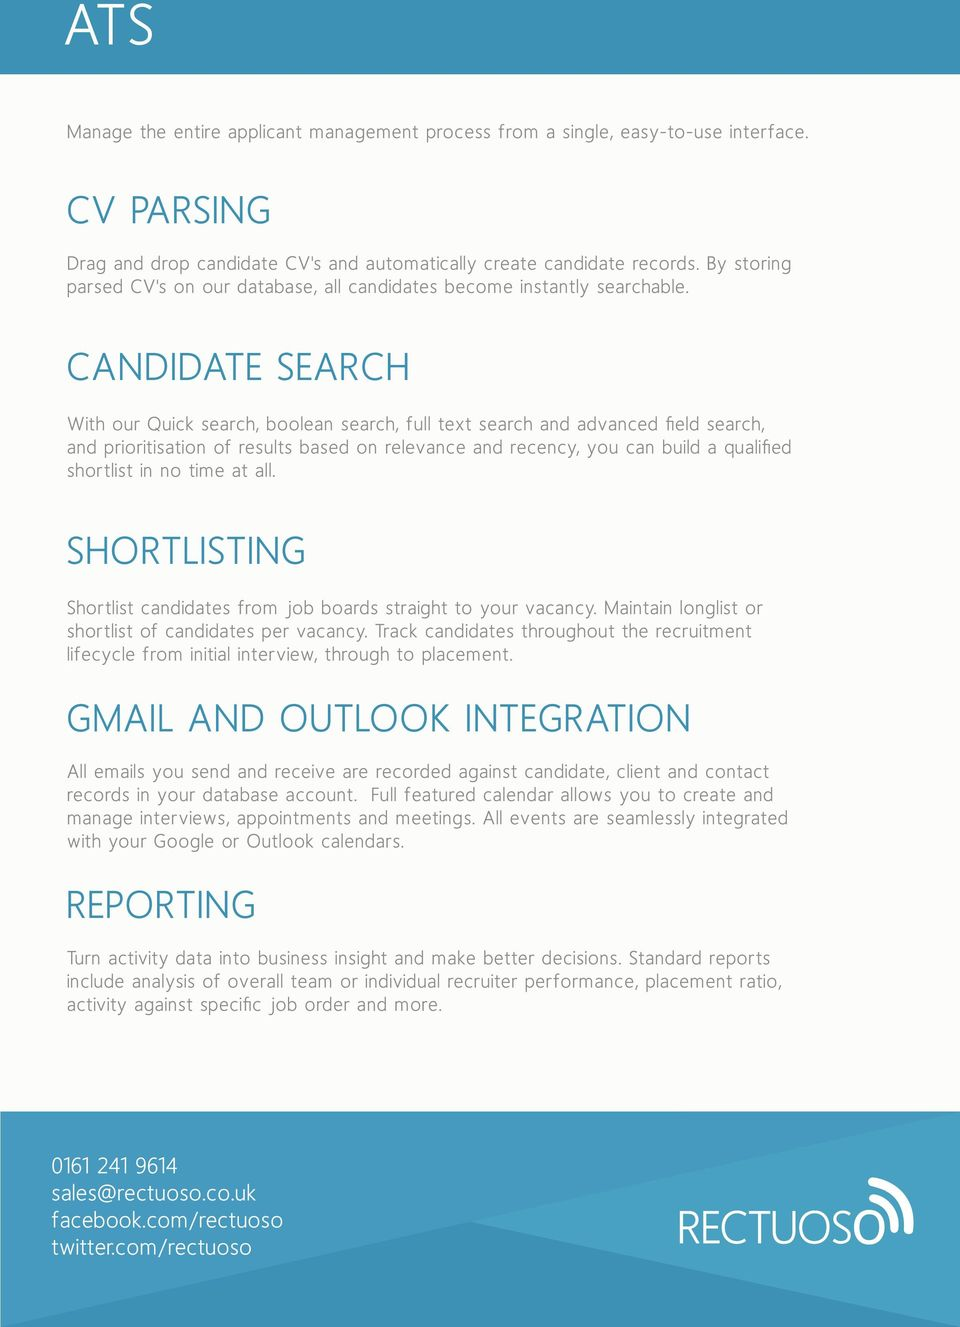 CANDIDATE SEARCH With our Quick search, boolean search, full text search and advanced field search, and prioritisation of results based on relevance and recency, you can build a qualified shortlist